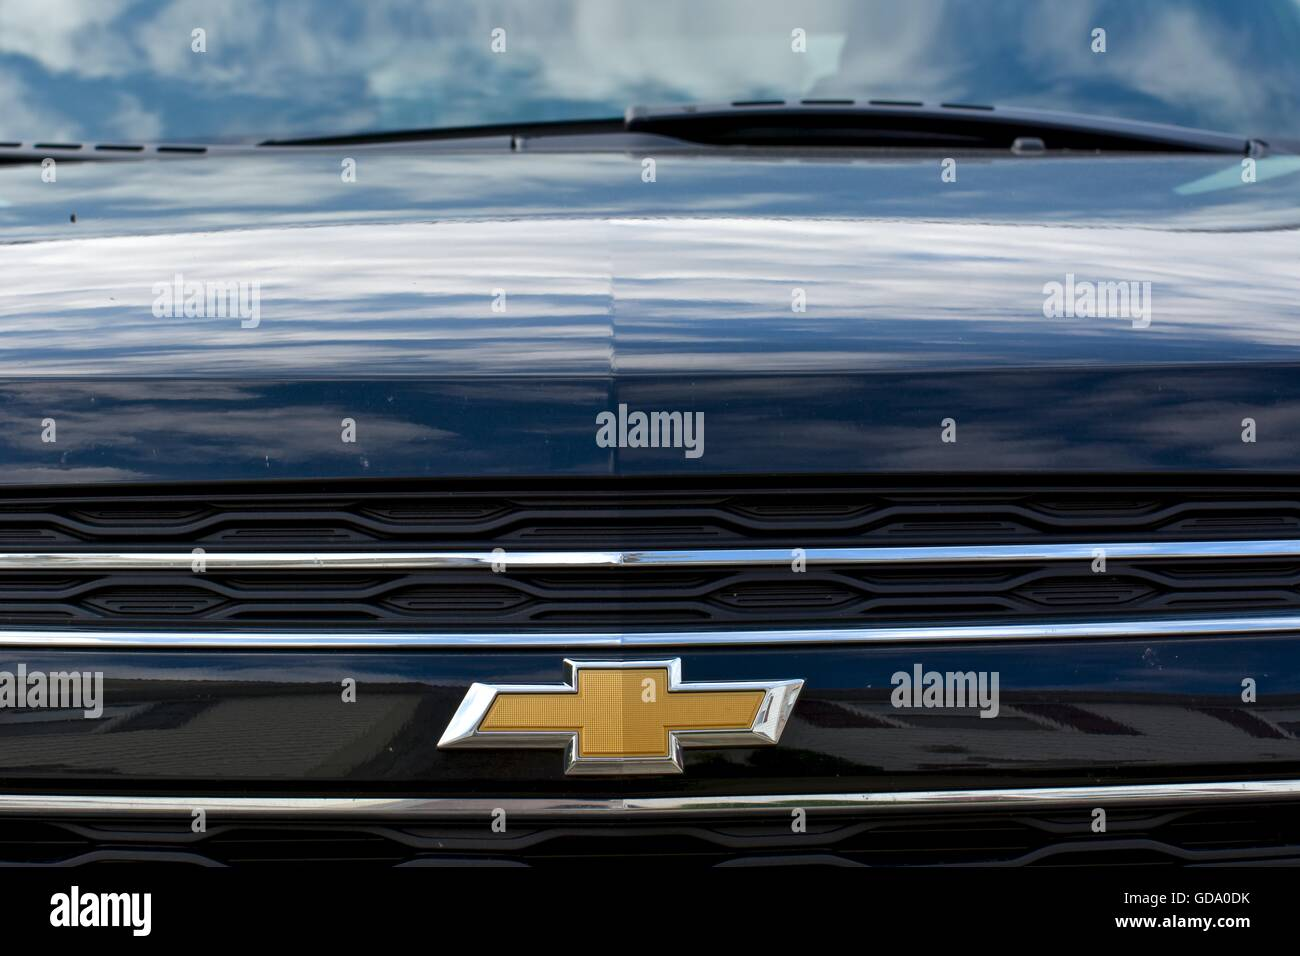 All Chevy black chevy symbol : The front end of a black Chevy vehicle showing the Chevy symbol up ...